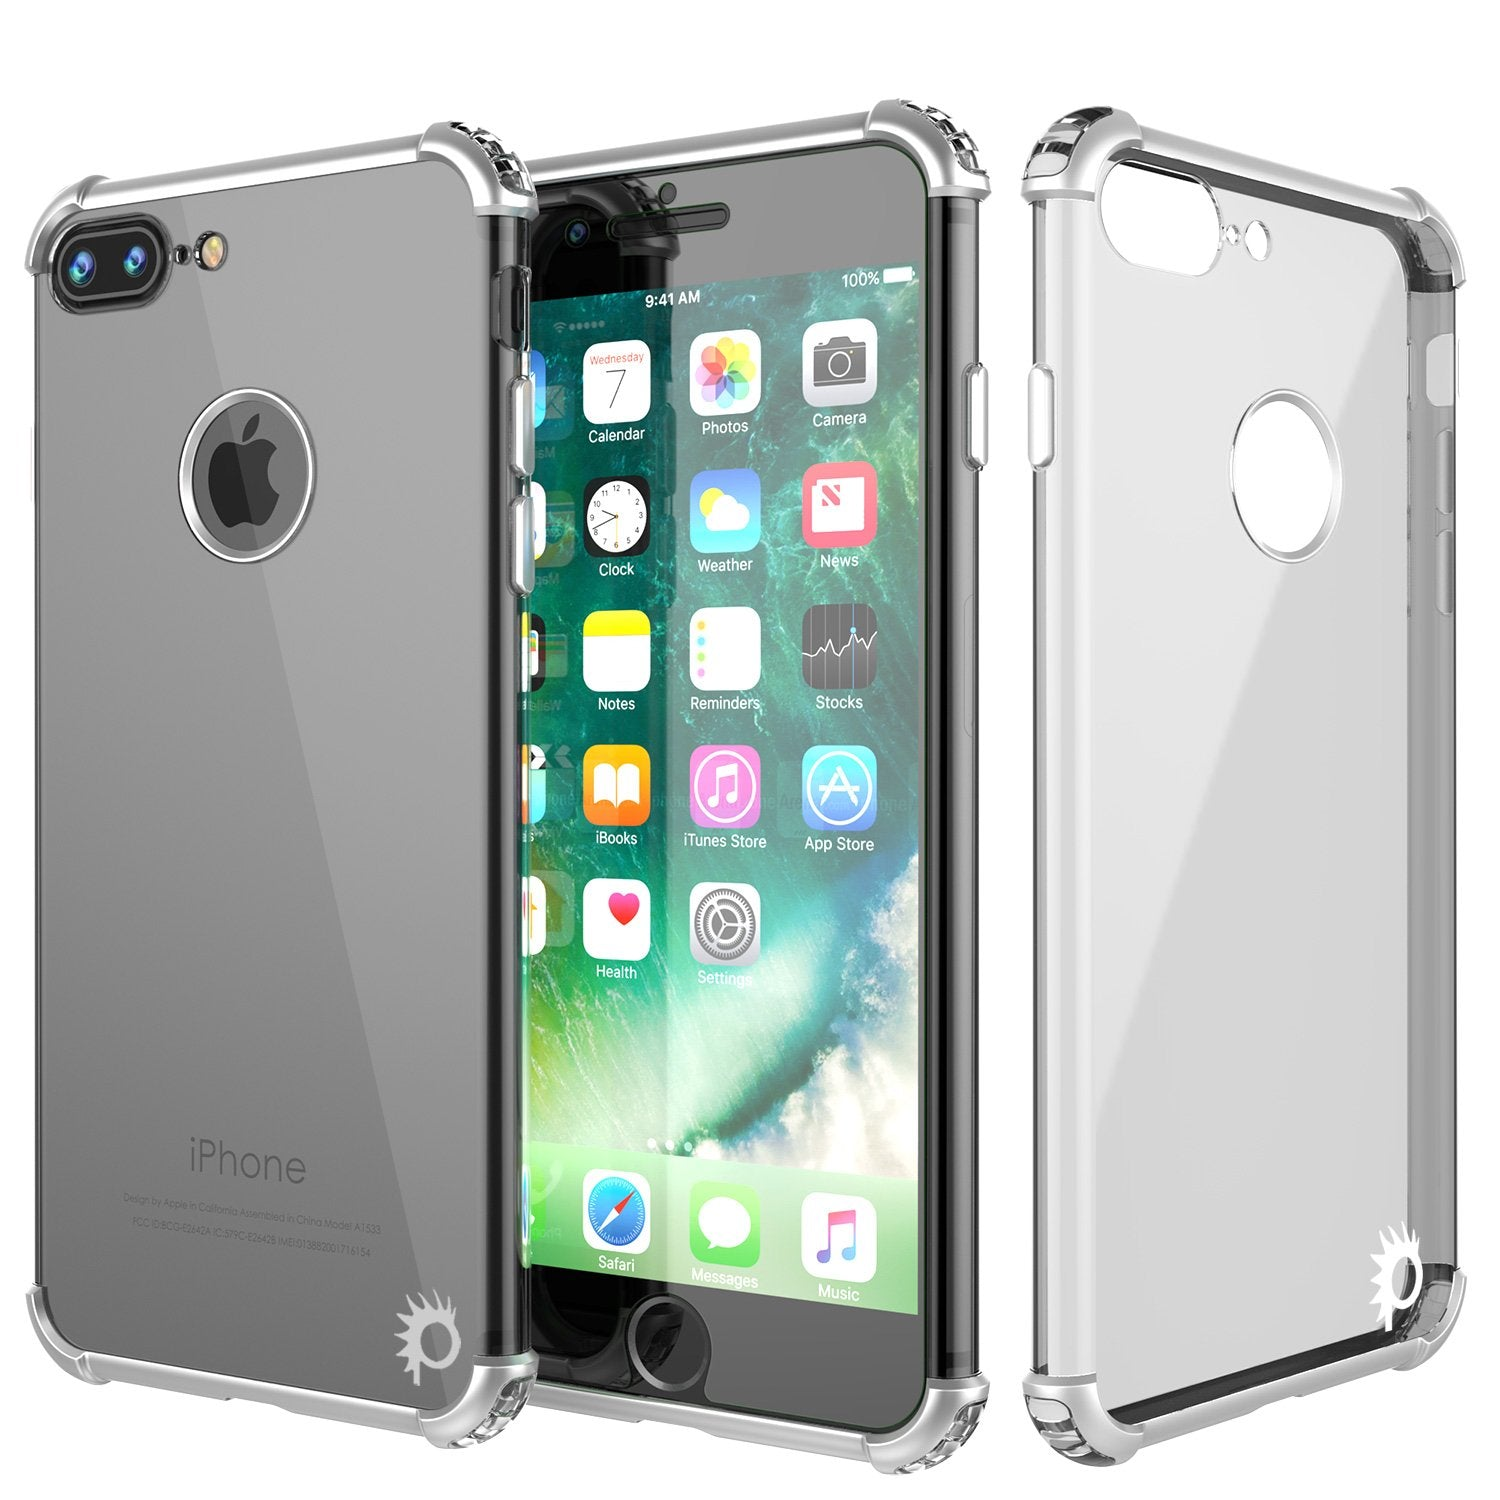 iPhone 7 PLUS Case, Punkcase [BLAZE SERIES] Protective Cover W/ PunkShield Screen Protector [Shockproof] [Slim Fit] for Apple iPhone 7 PLUS [Silver] - PunkCase NZ